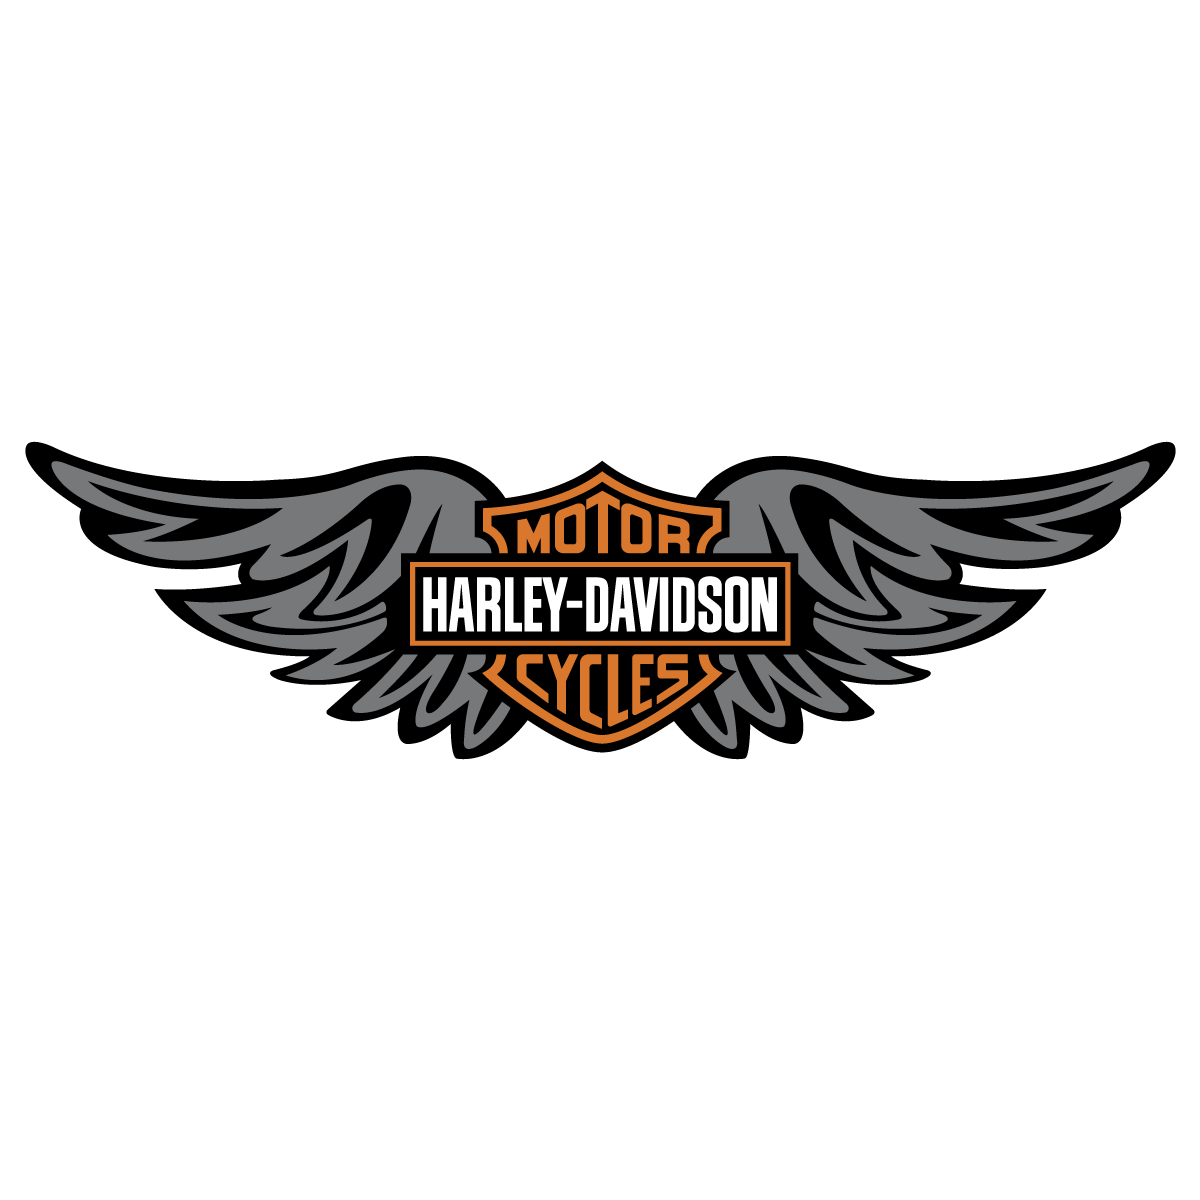 Harley davidson clipart wing.